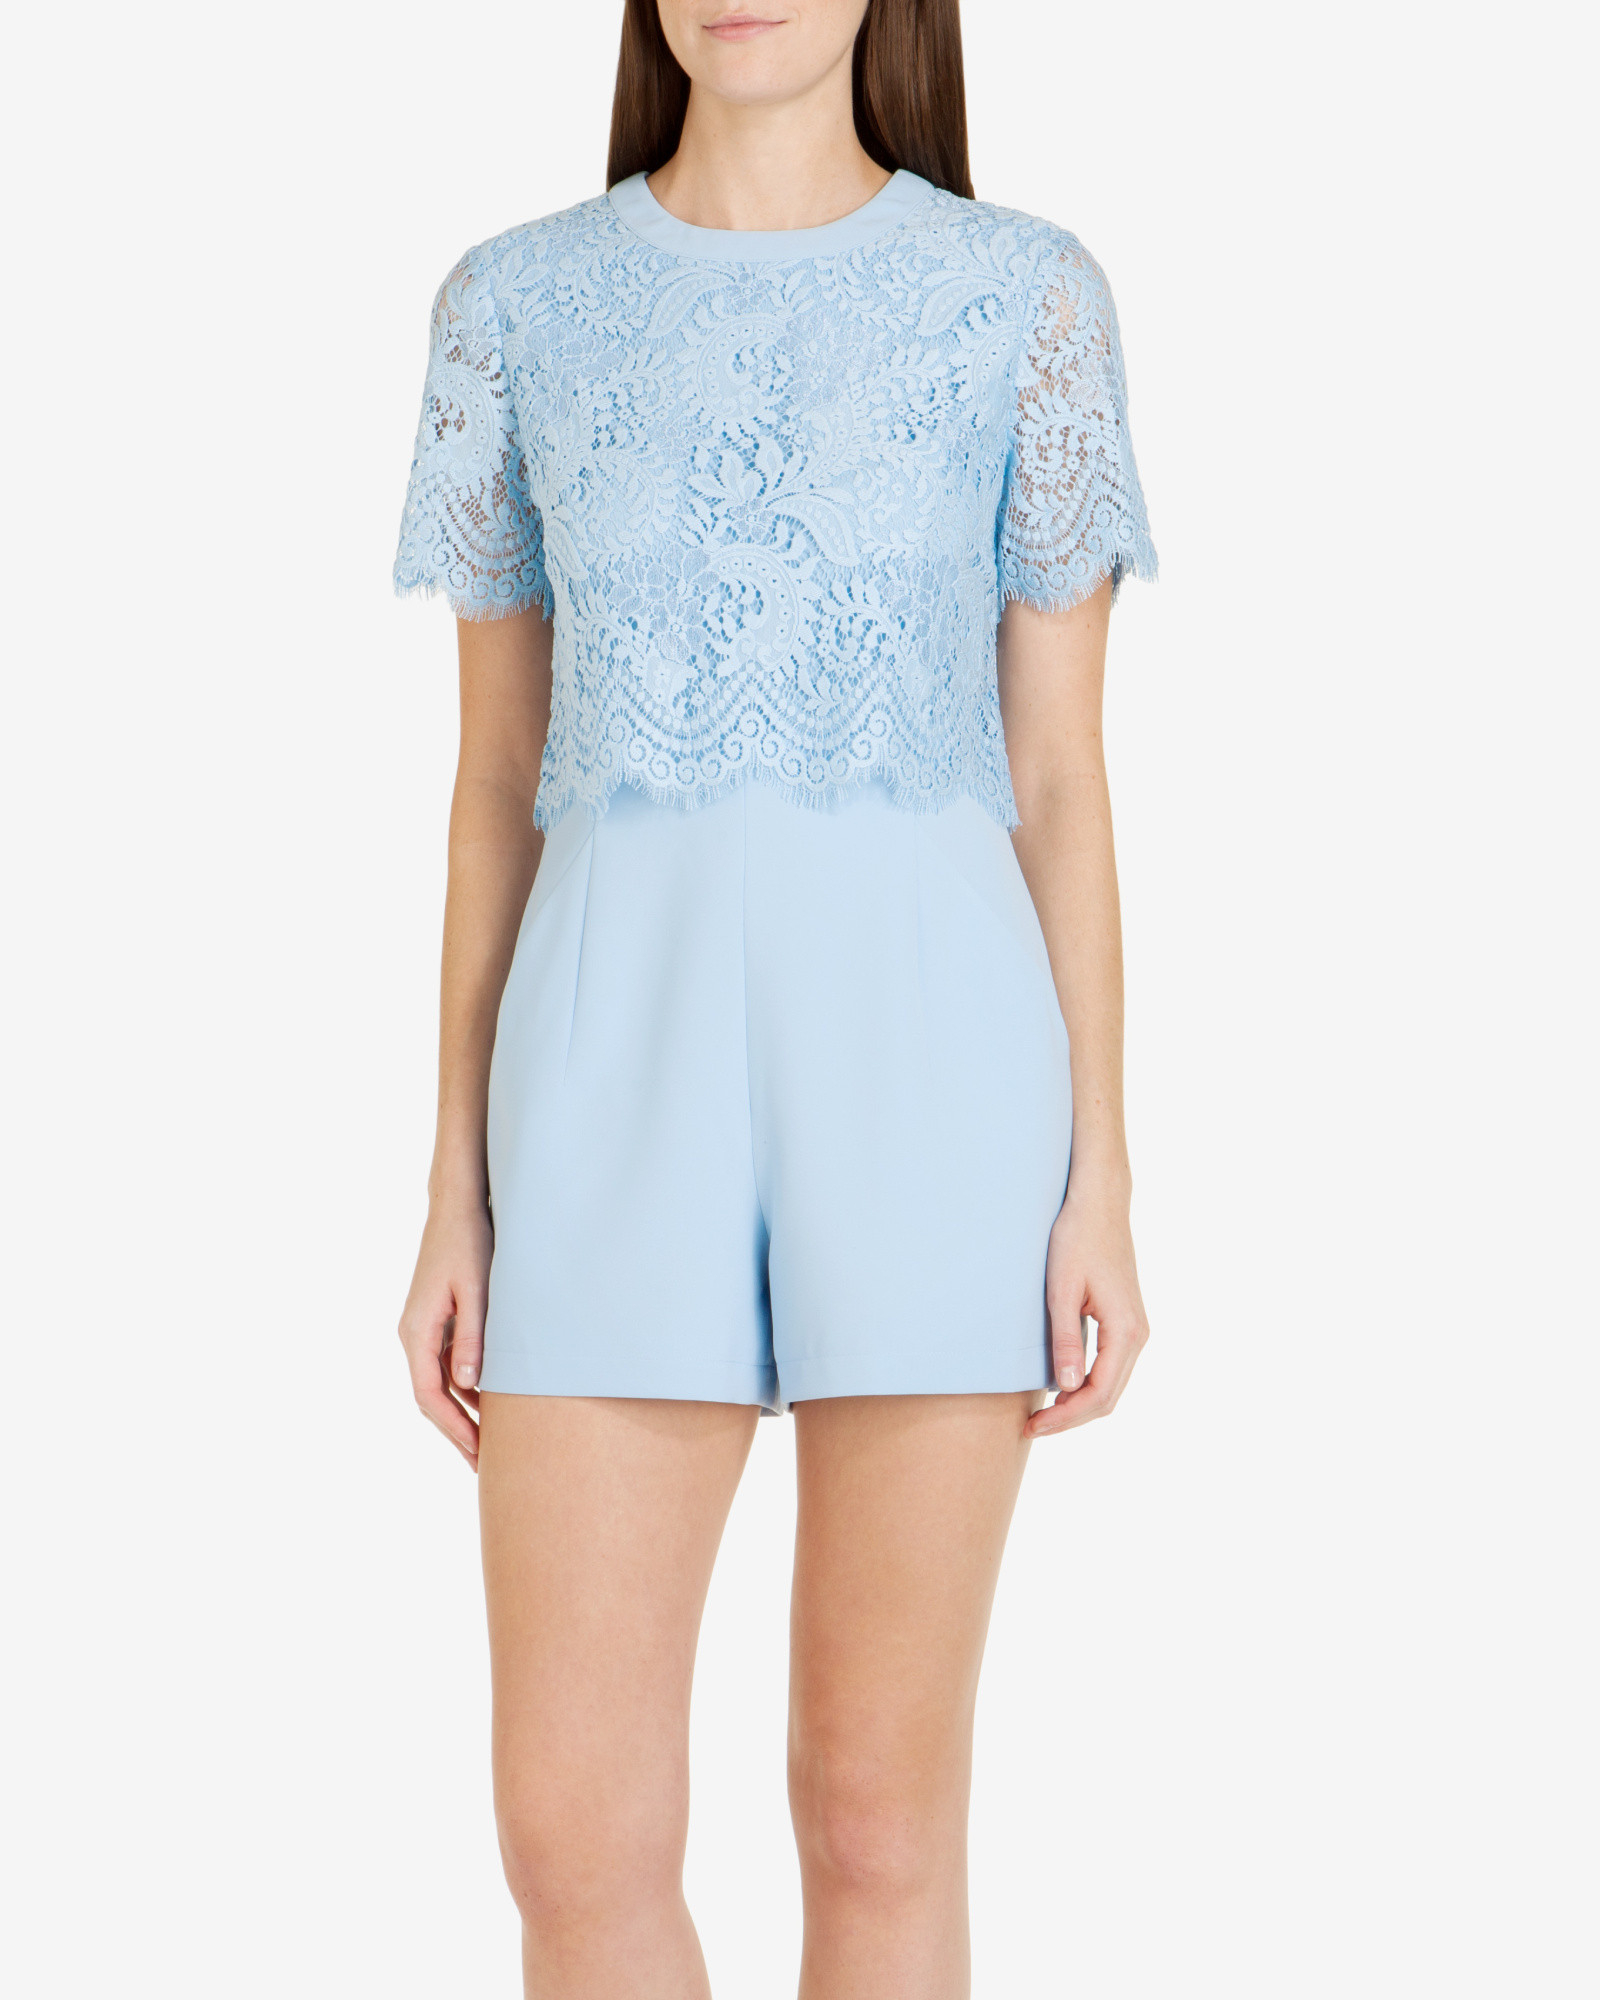 bbf41d1ff99 Ted Baker Lace Bodice Playsuit in Blue - Lyst